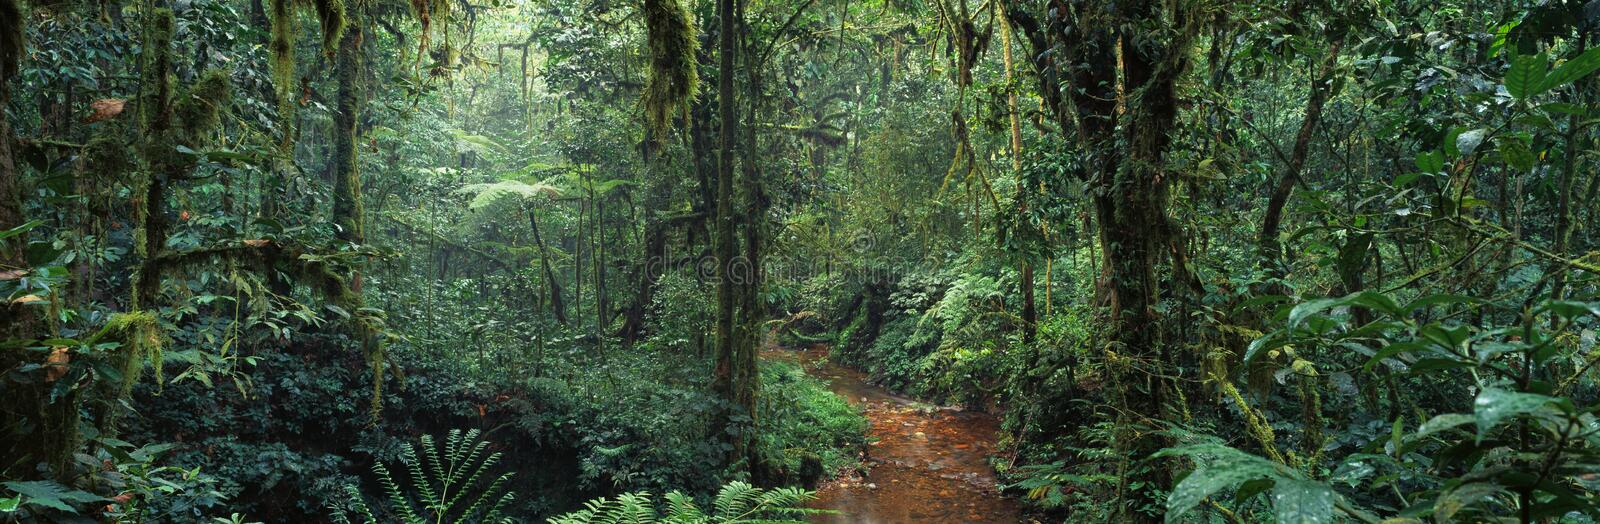 Jungle. Forest tree africa congo panorama landscape rainforest branch grass